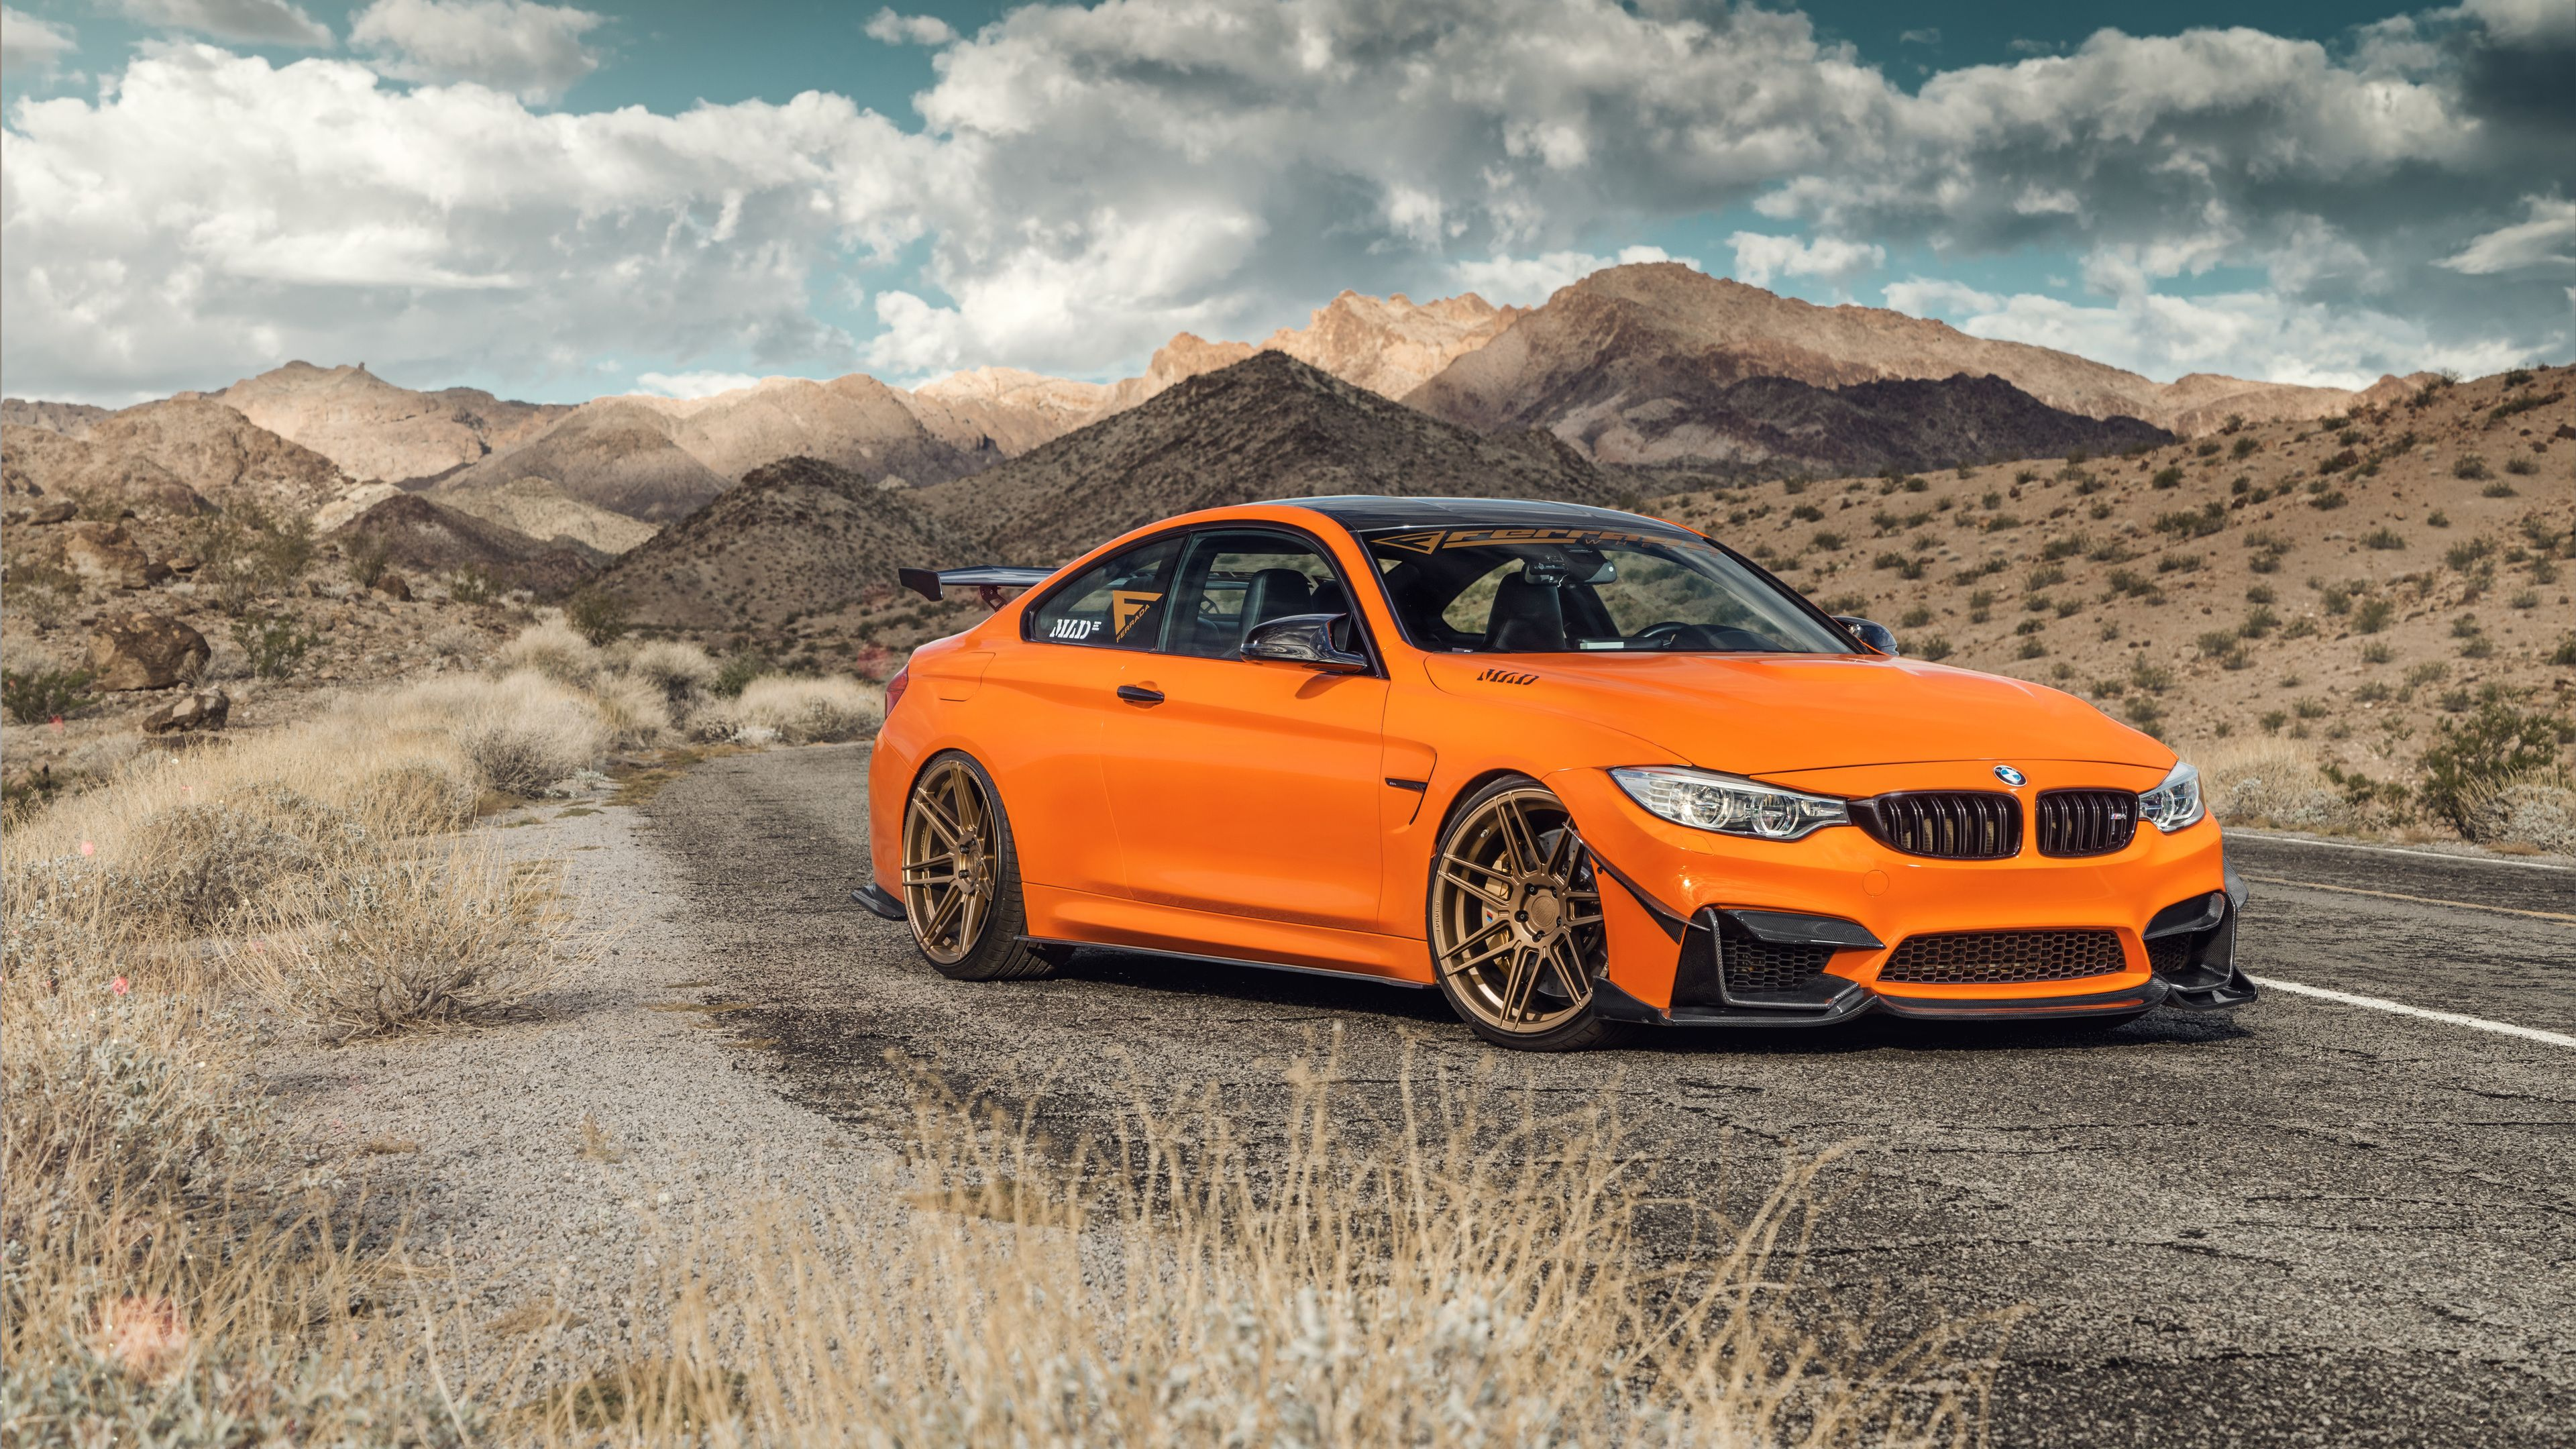 Bmw M4 2019 4k Hd Wallpapers Cars Wallpapers Bmw Wallpapers Bmw M4 Wallpapers 8k Wallpapers 5k Wallpapers 4k Wallpapers 2019 C Bmw M4 Bmw Bmw Wallpapers